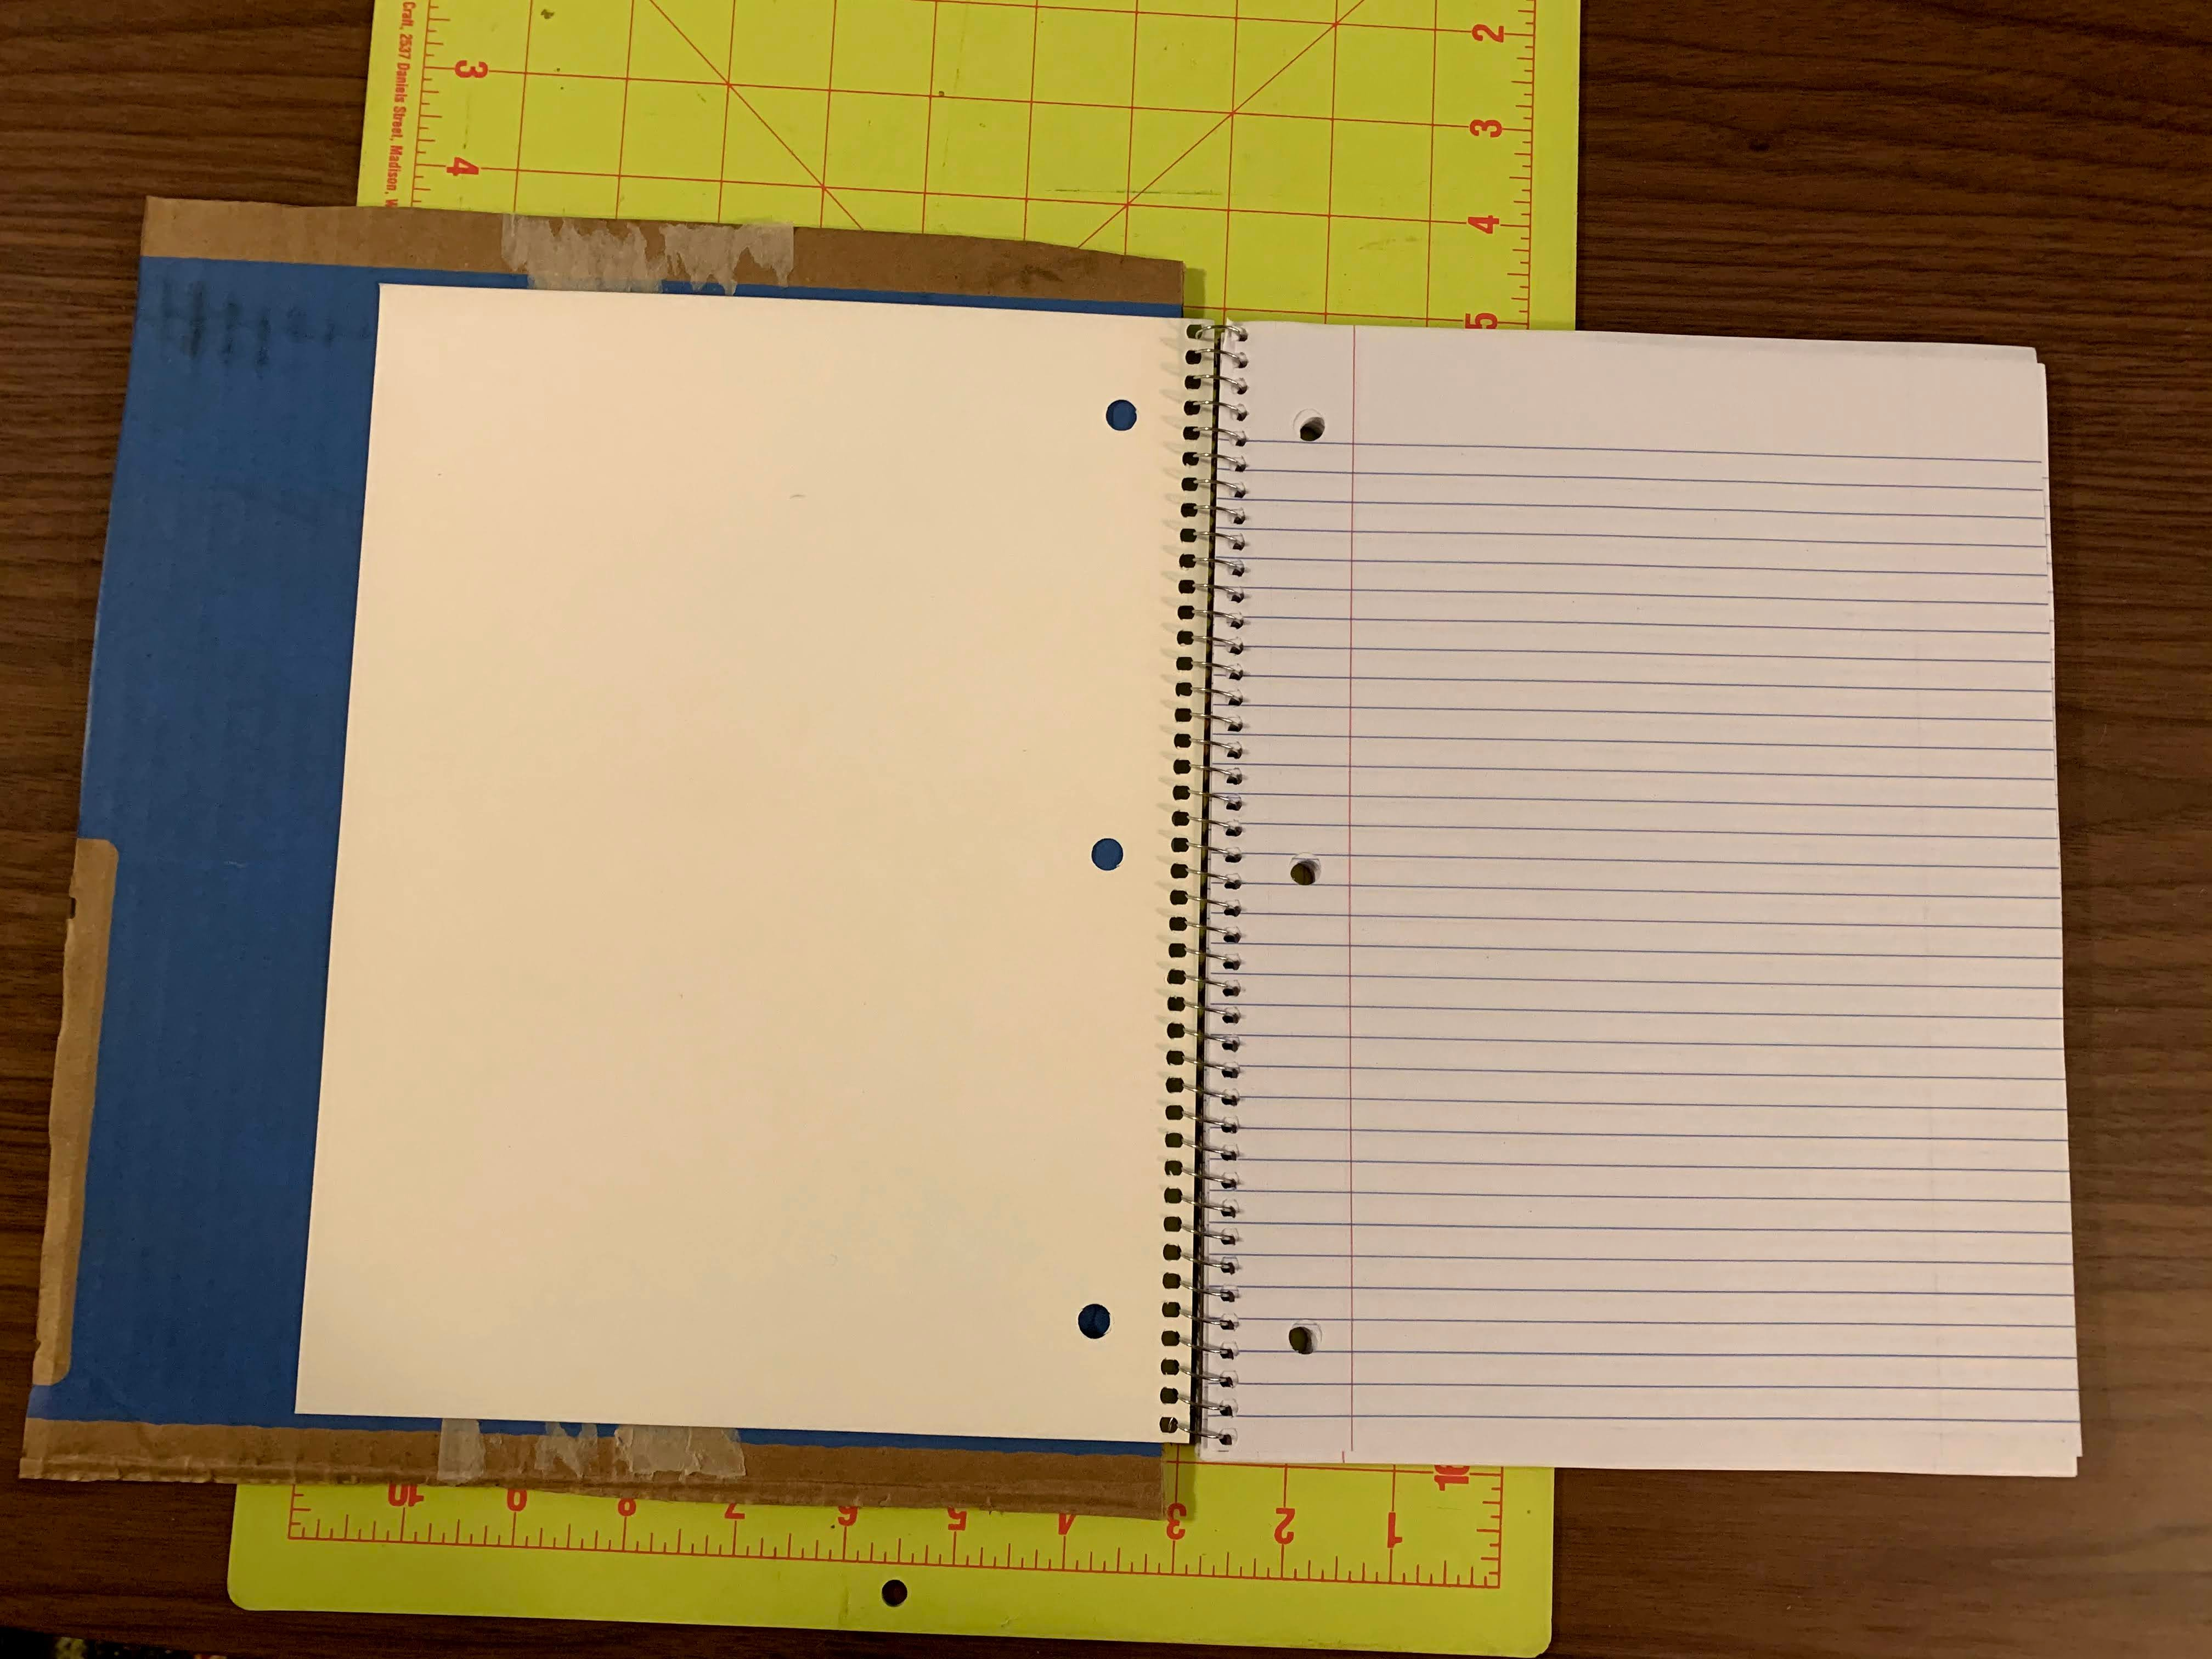 notebook open on cutting board